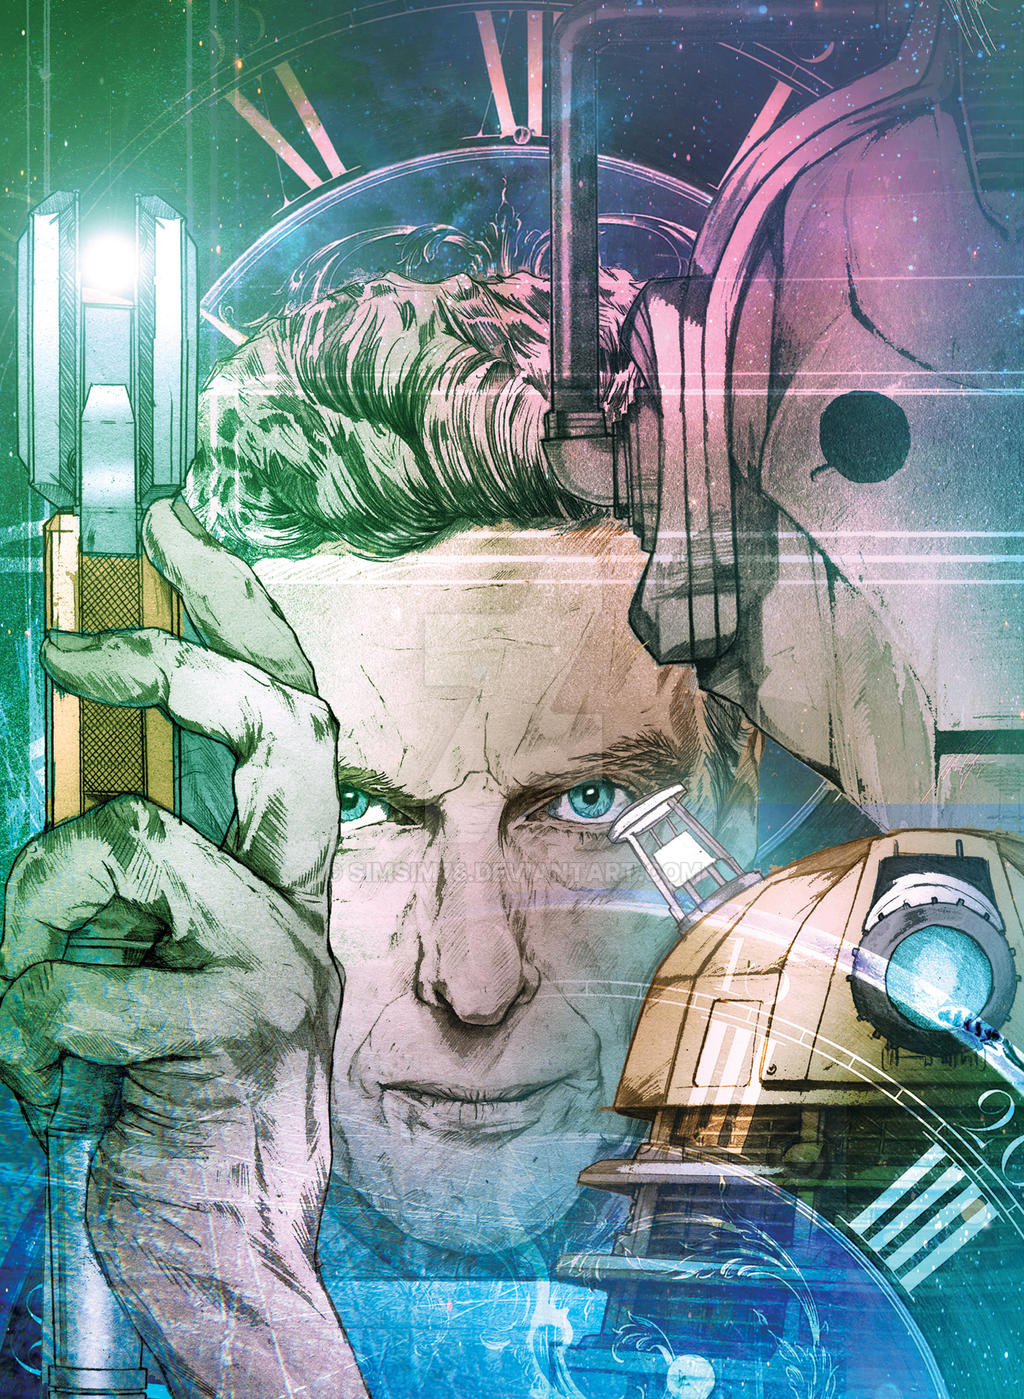 Timelord 12 by simsim78